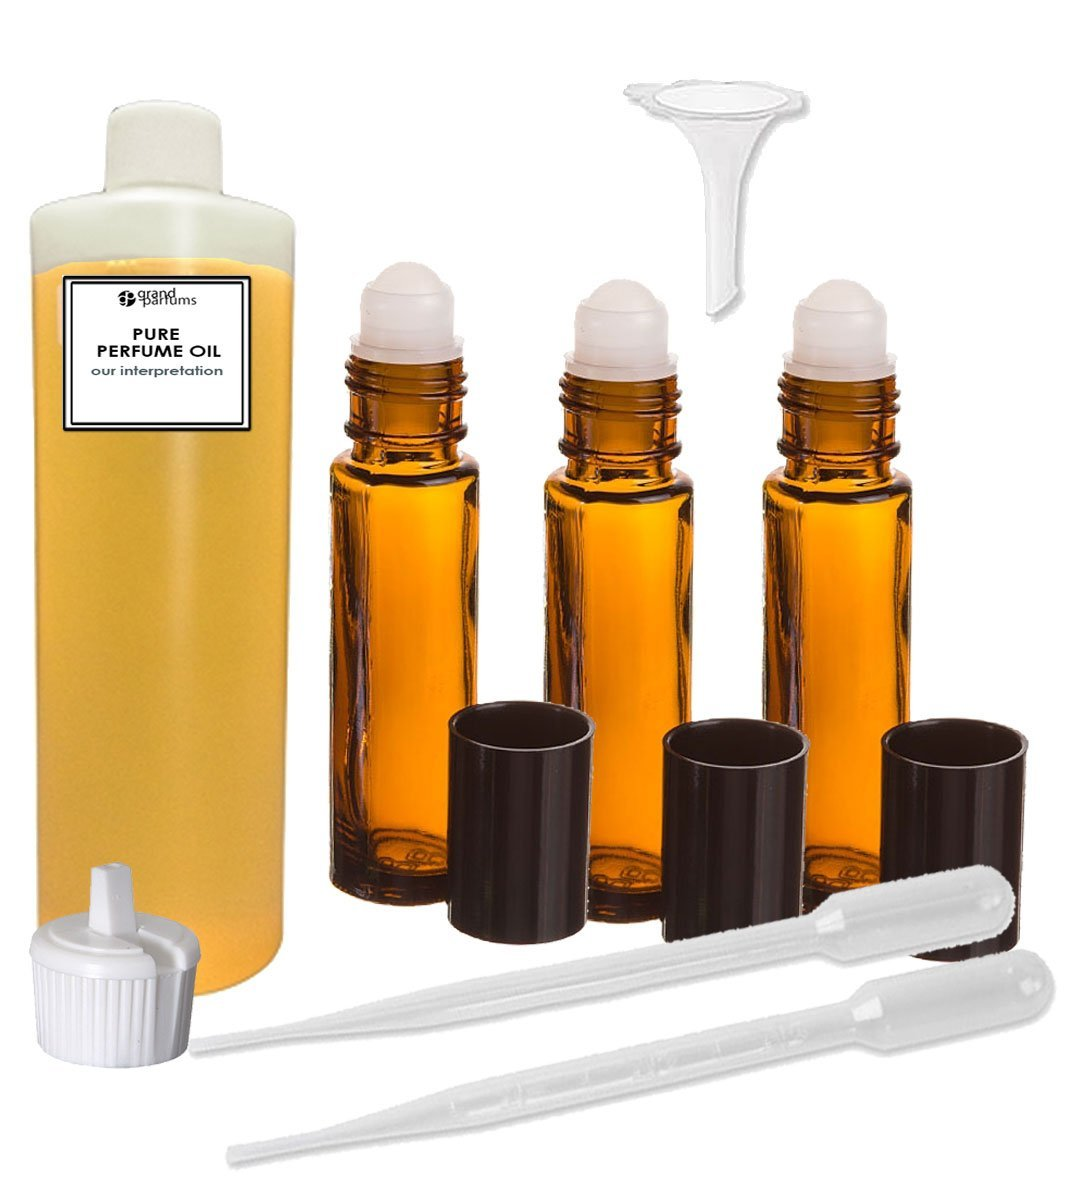 Grand Parfums Perfume Oil Set V By Valentino Body Oil For WMN Scented Fragrance Oil Our... by